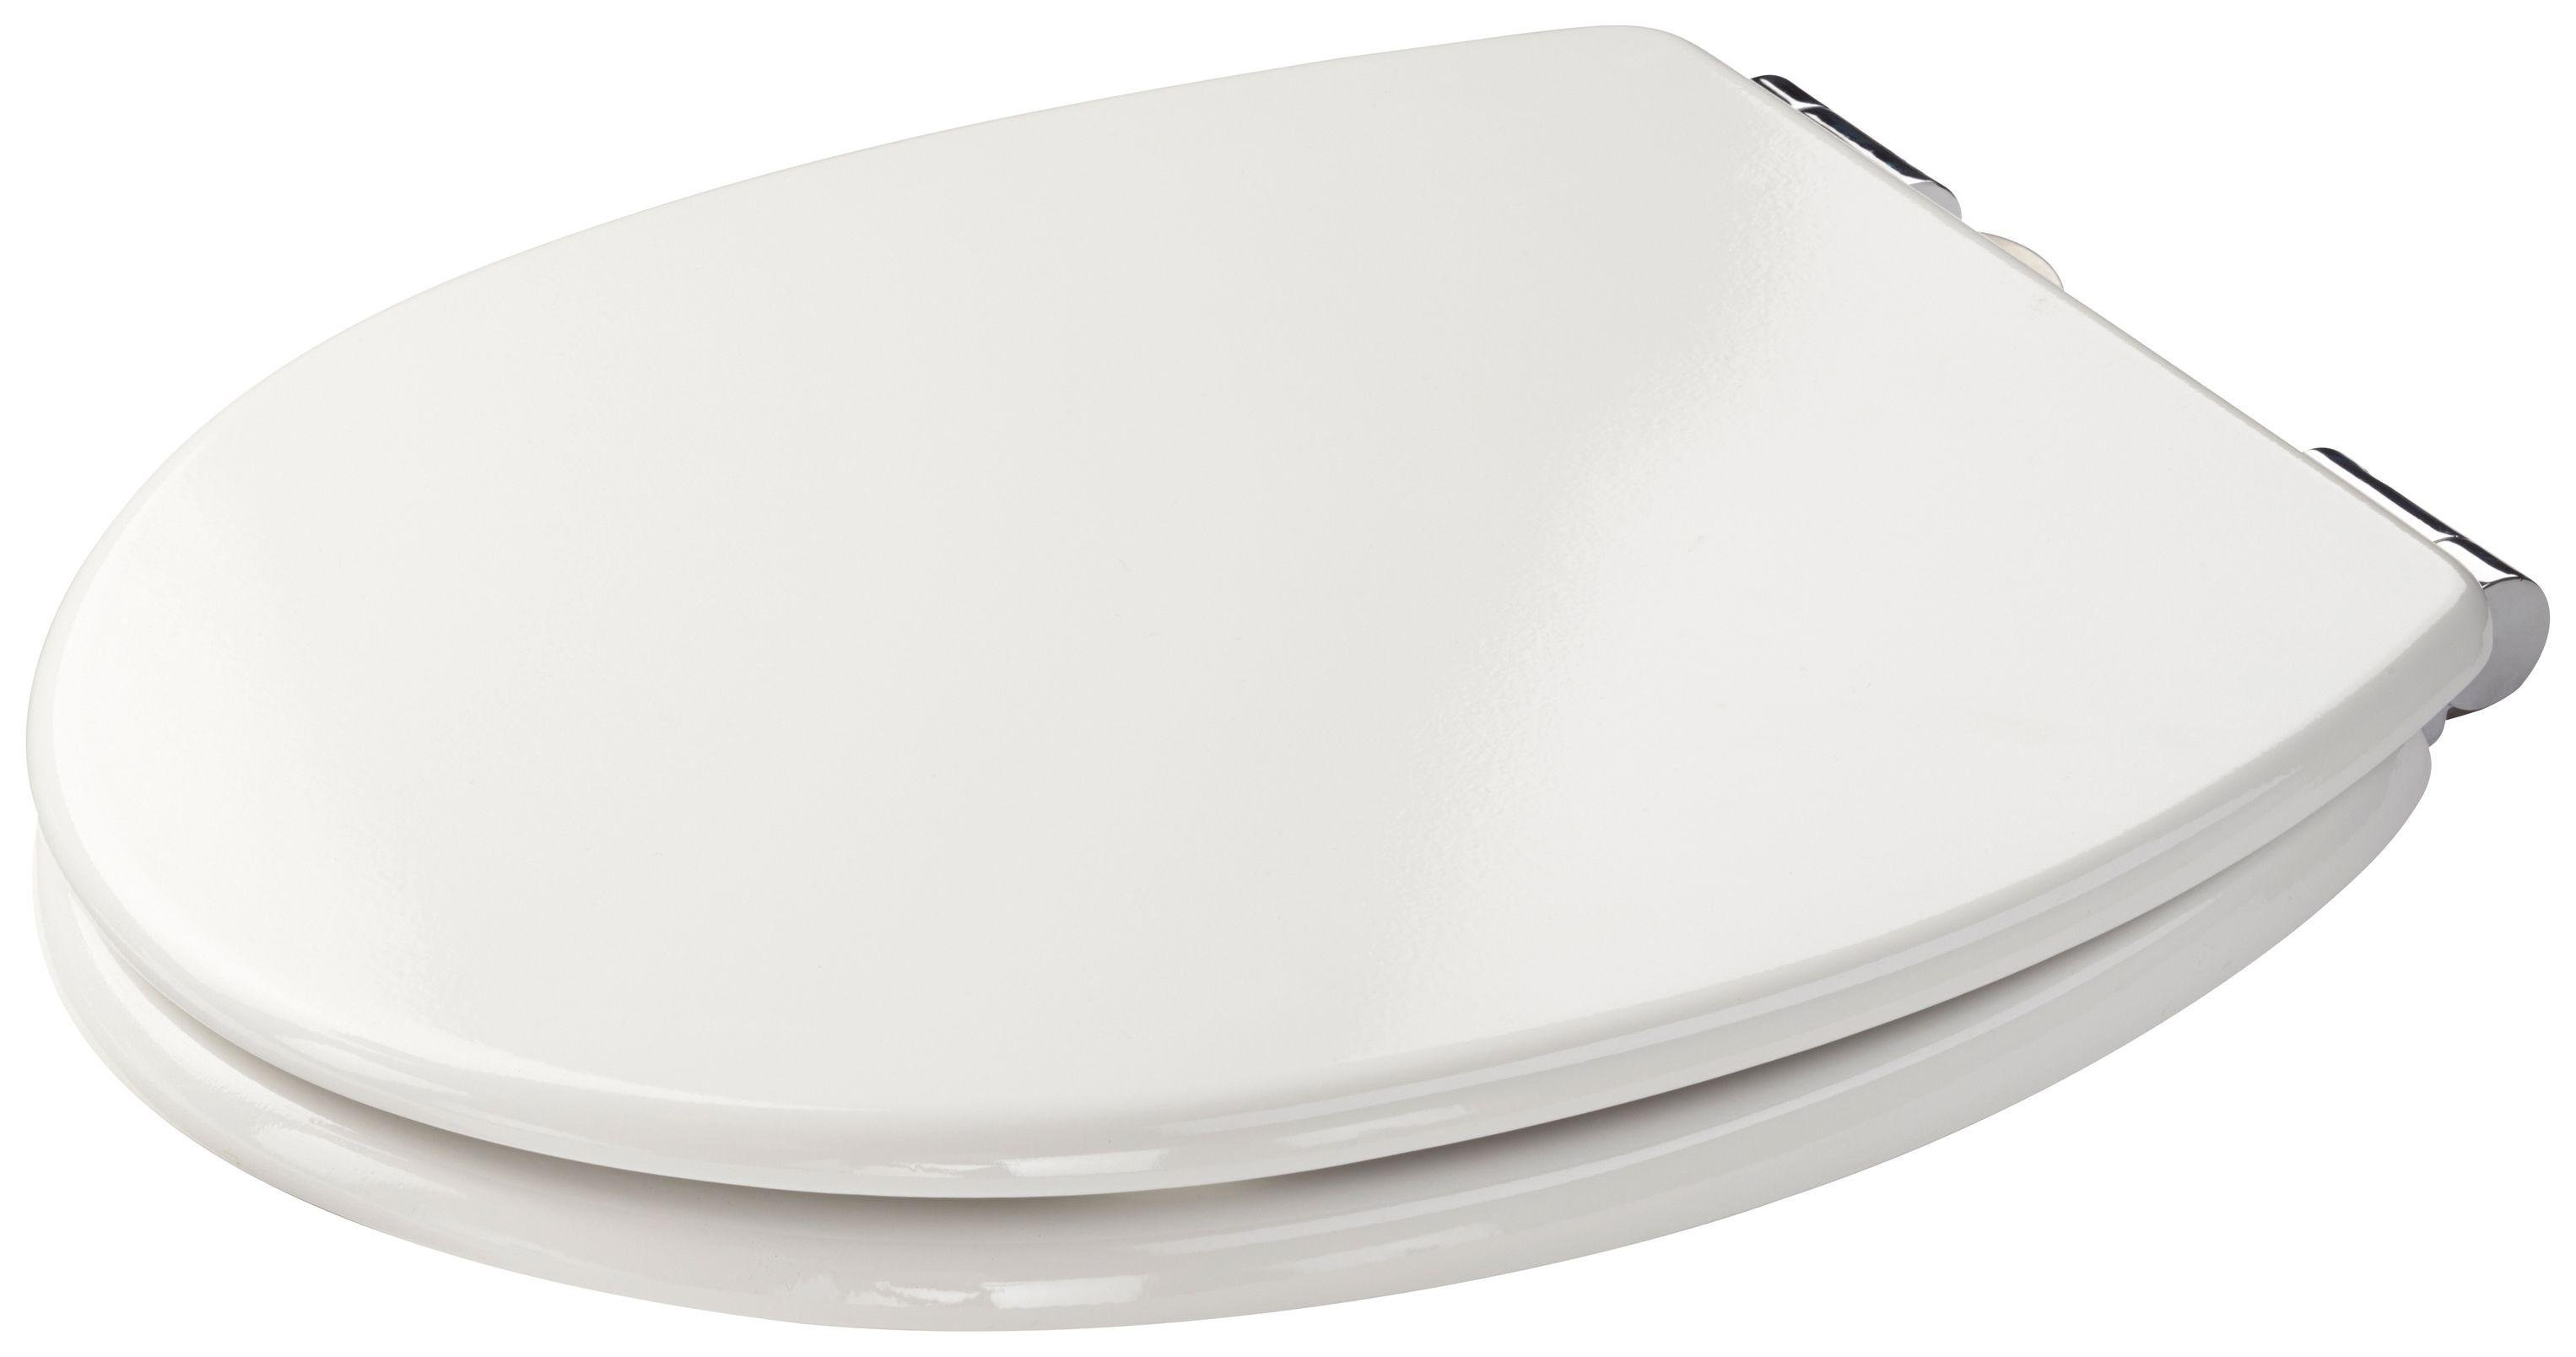 Buy Croydex Sit Tight Dawson Moulded Wood Toilet Seat White at